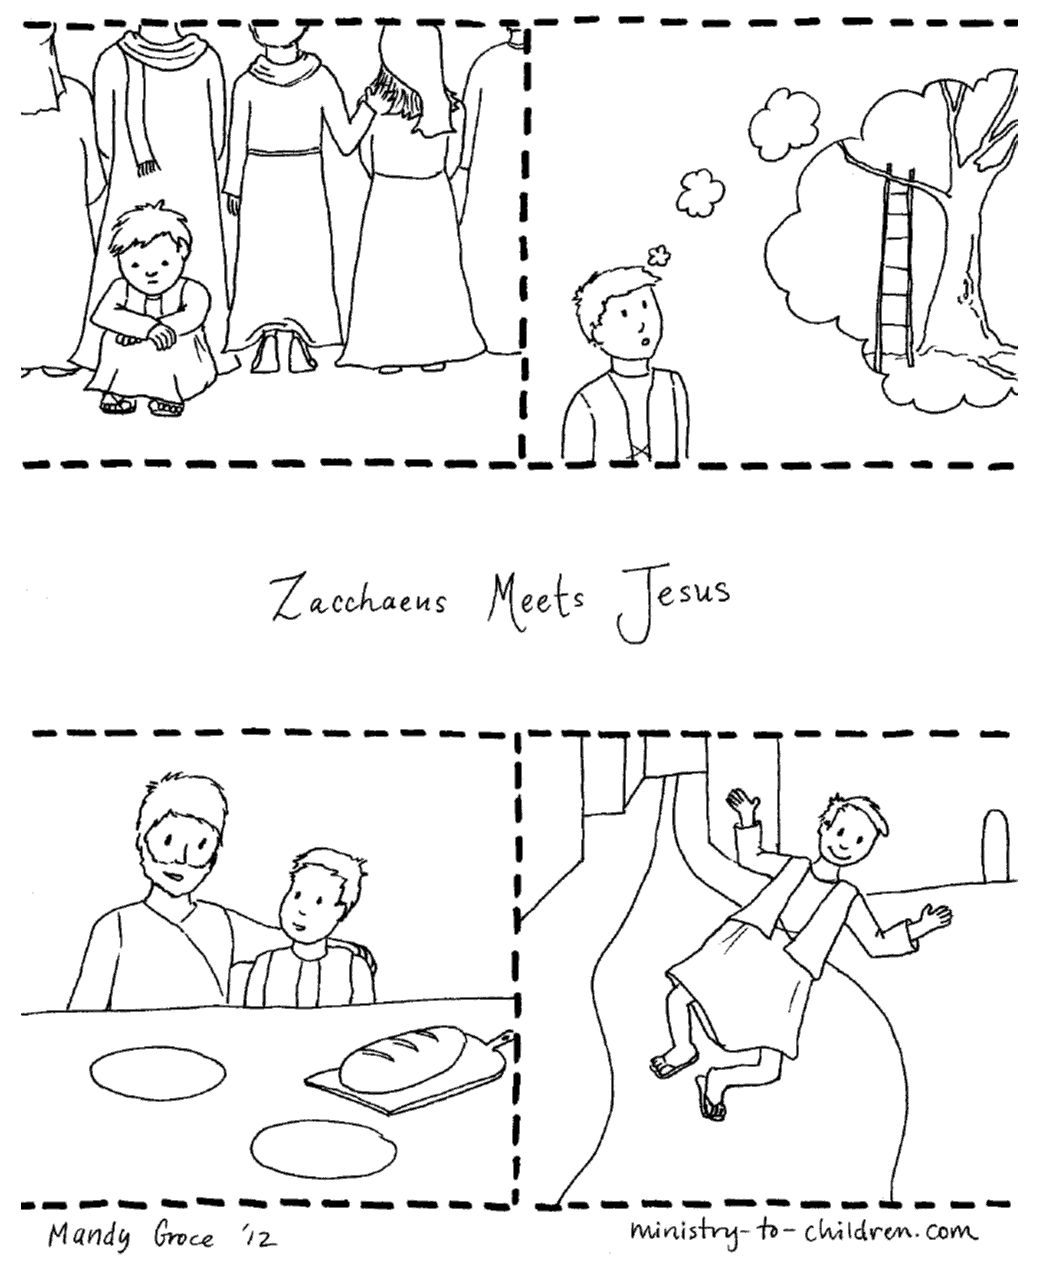 Jacob's dream - Genesis 28: 10-22 | Sunday school coloring pages ... | 1270x1040